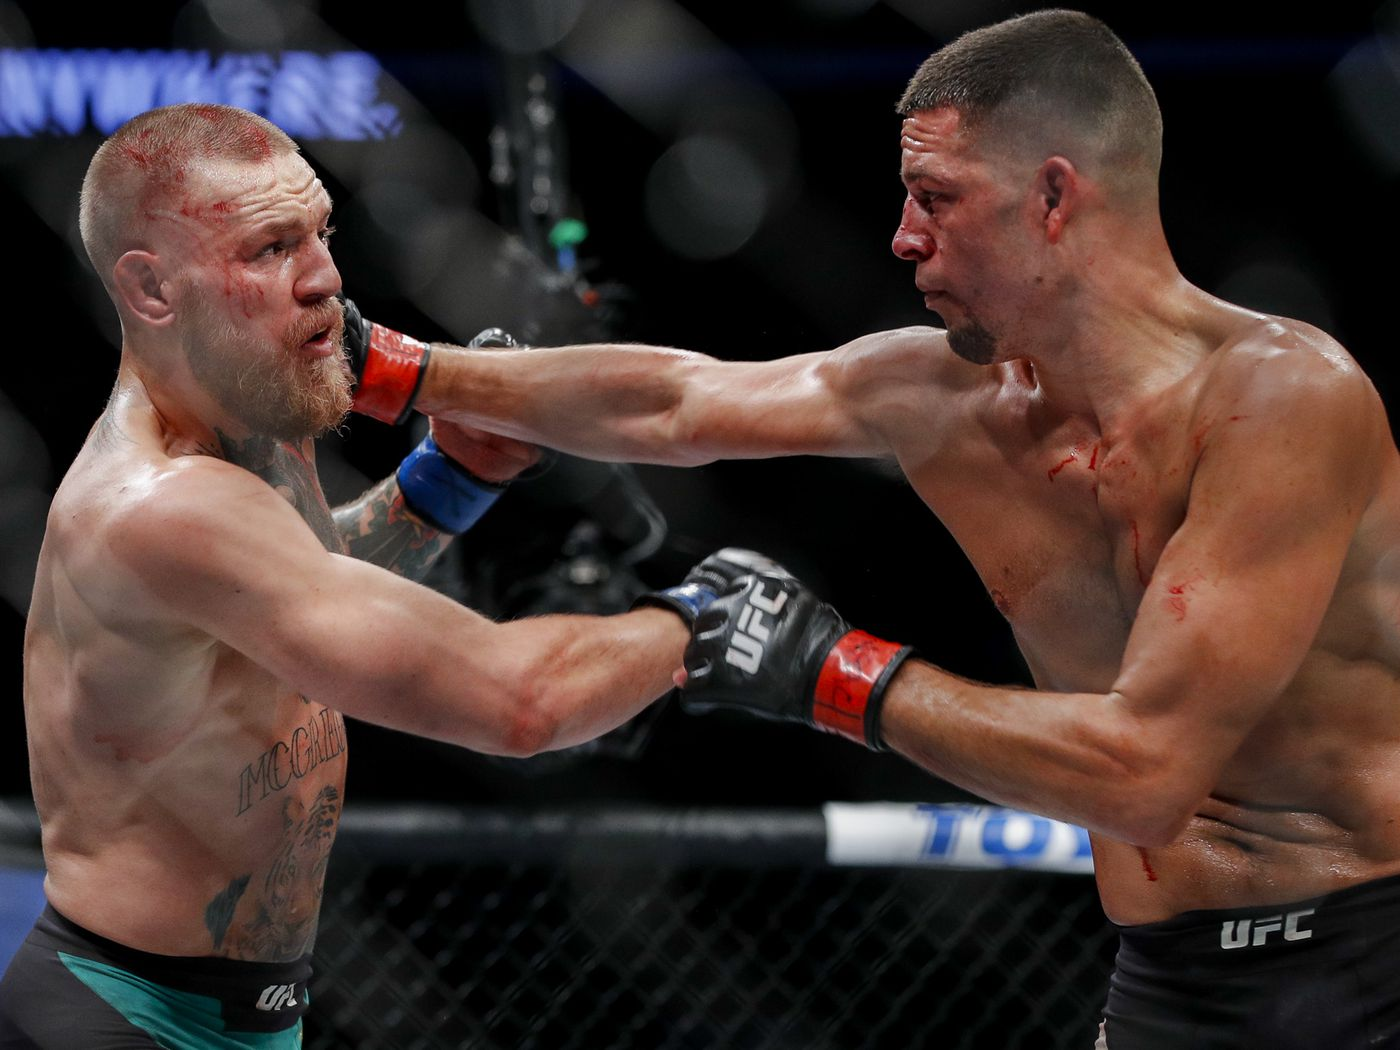 Nate Diaz Conor McGregor 2的图像结果